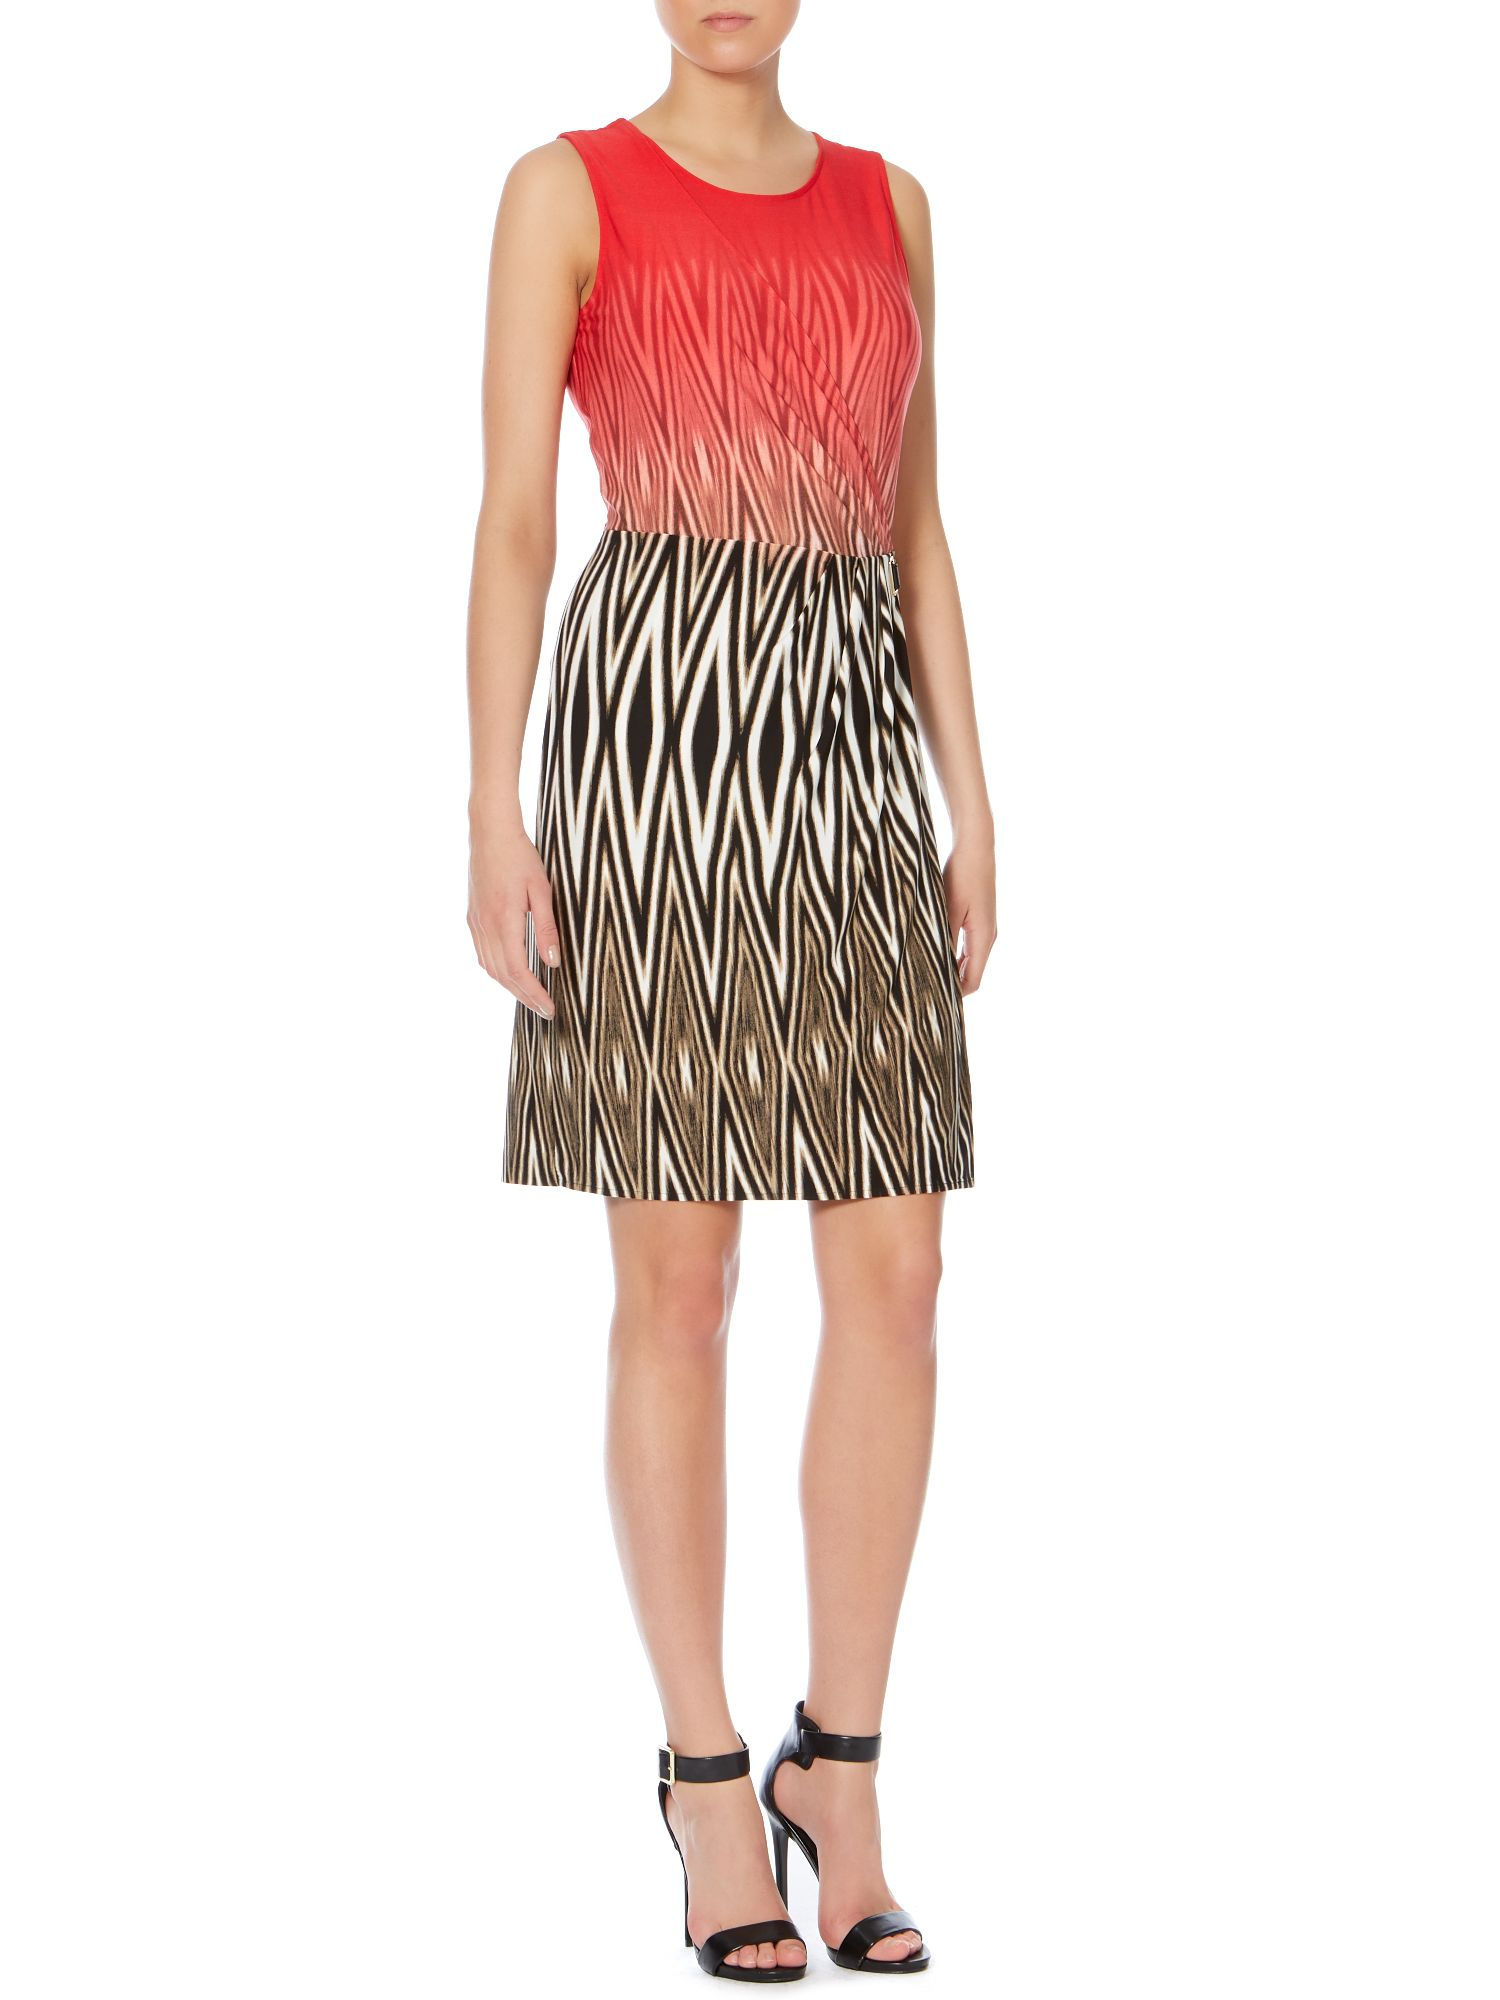 Sunset zebra print wrap dress